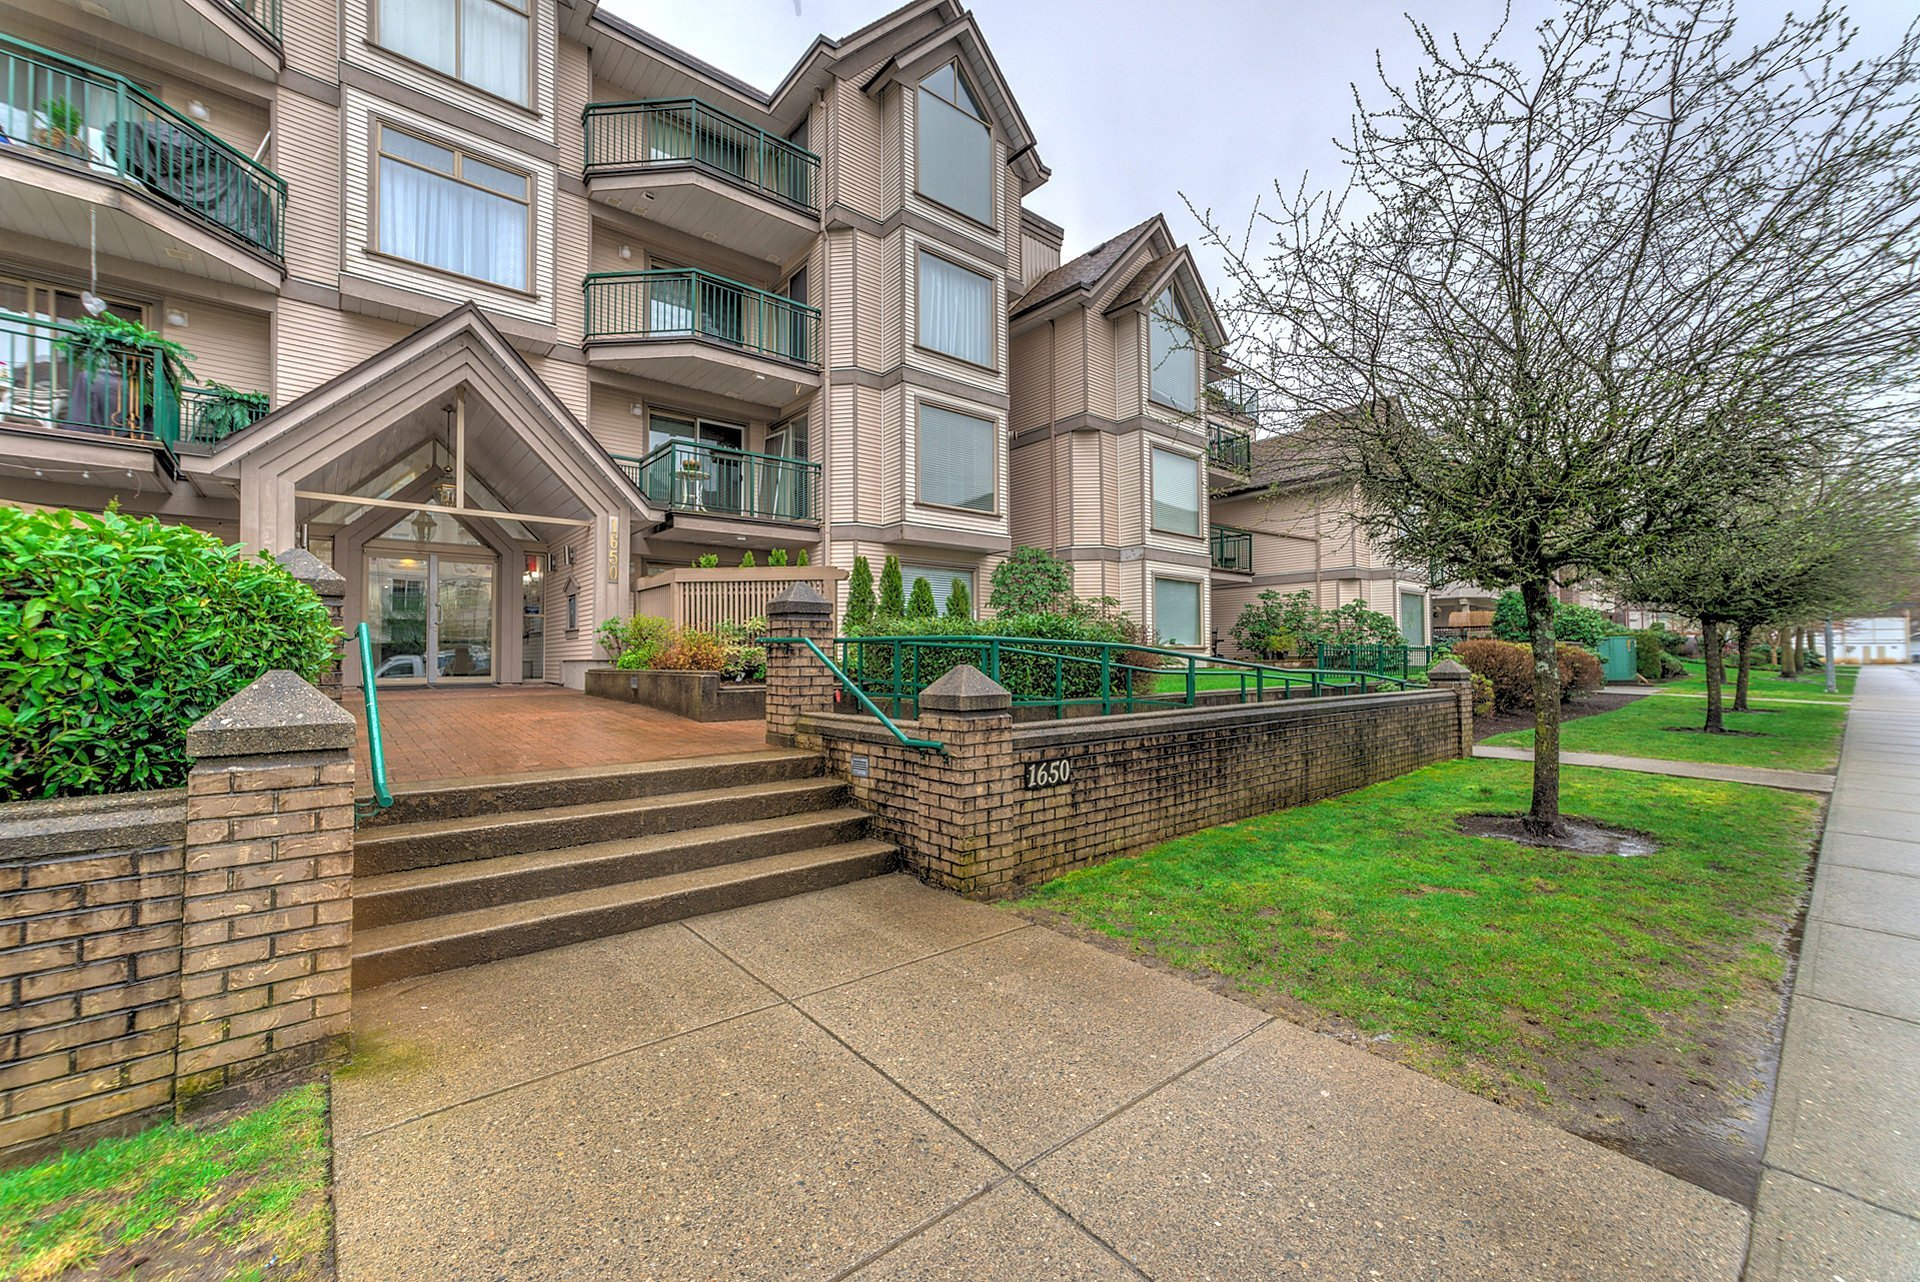 31207_2 at 105 - 1650 Grant Avenue, Glenwood PQ, Port Coquitlam